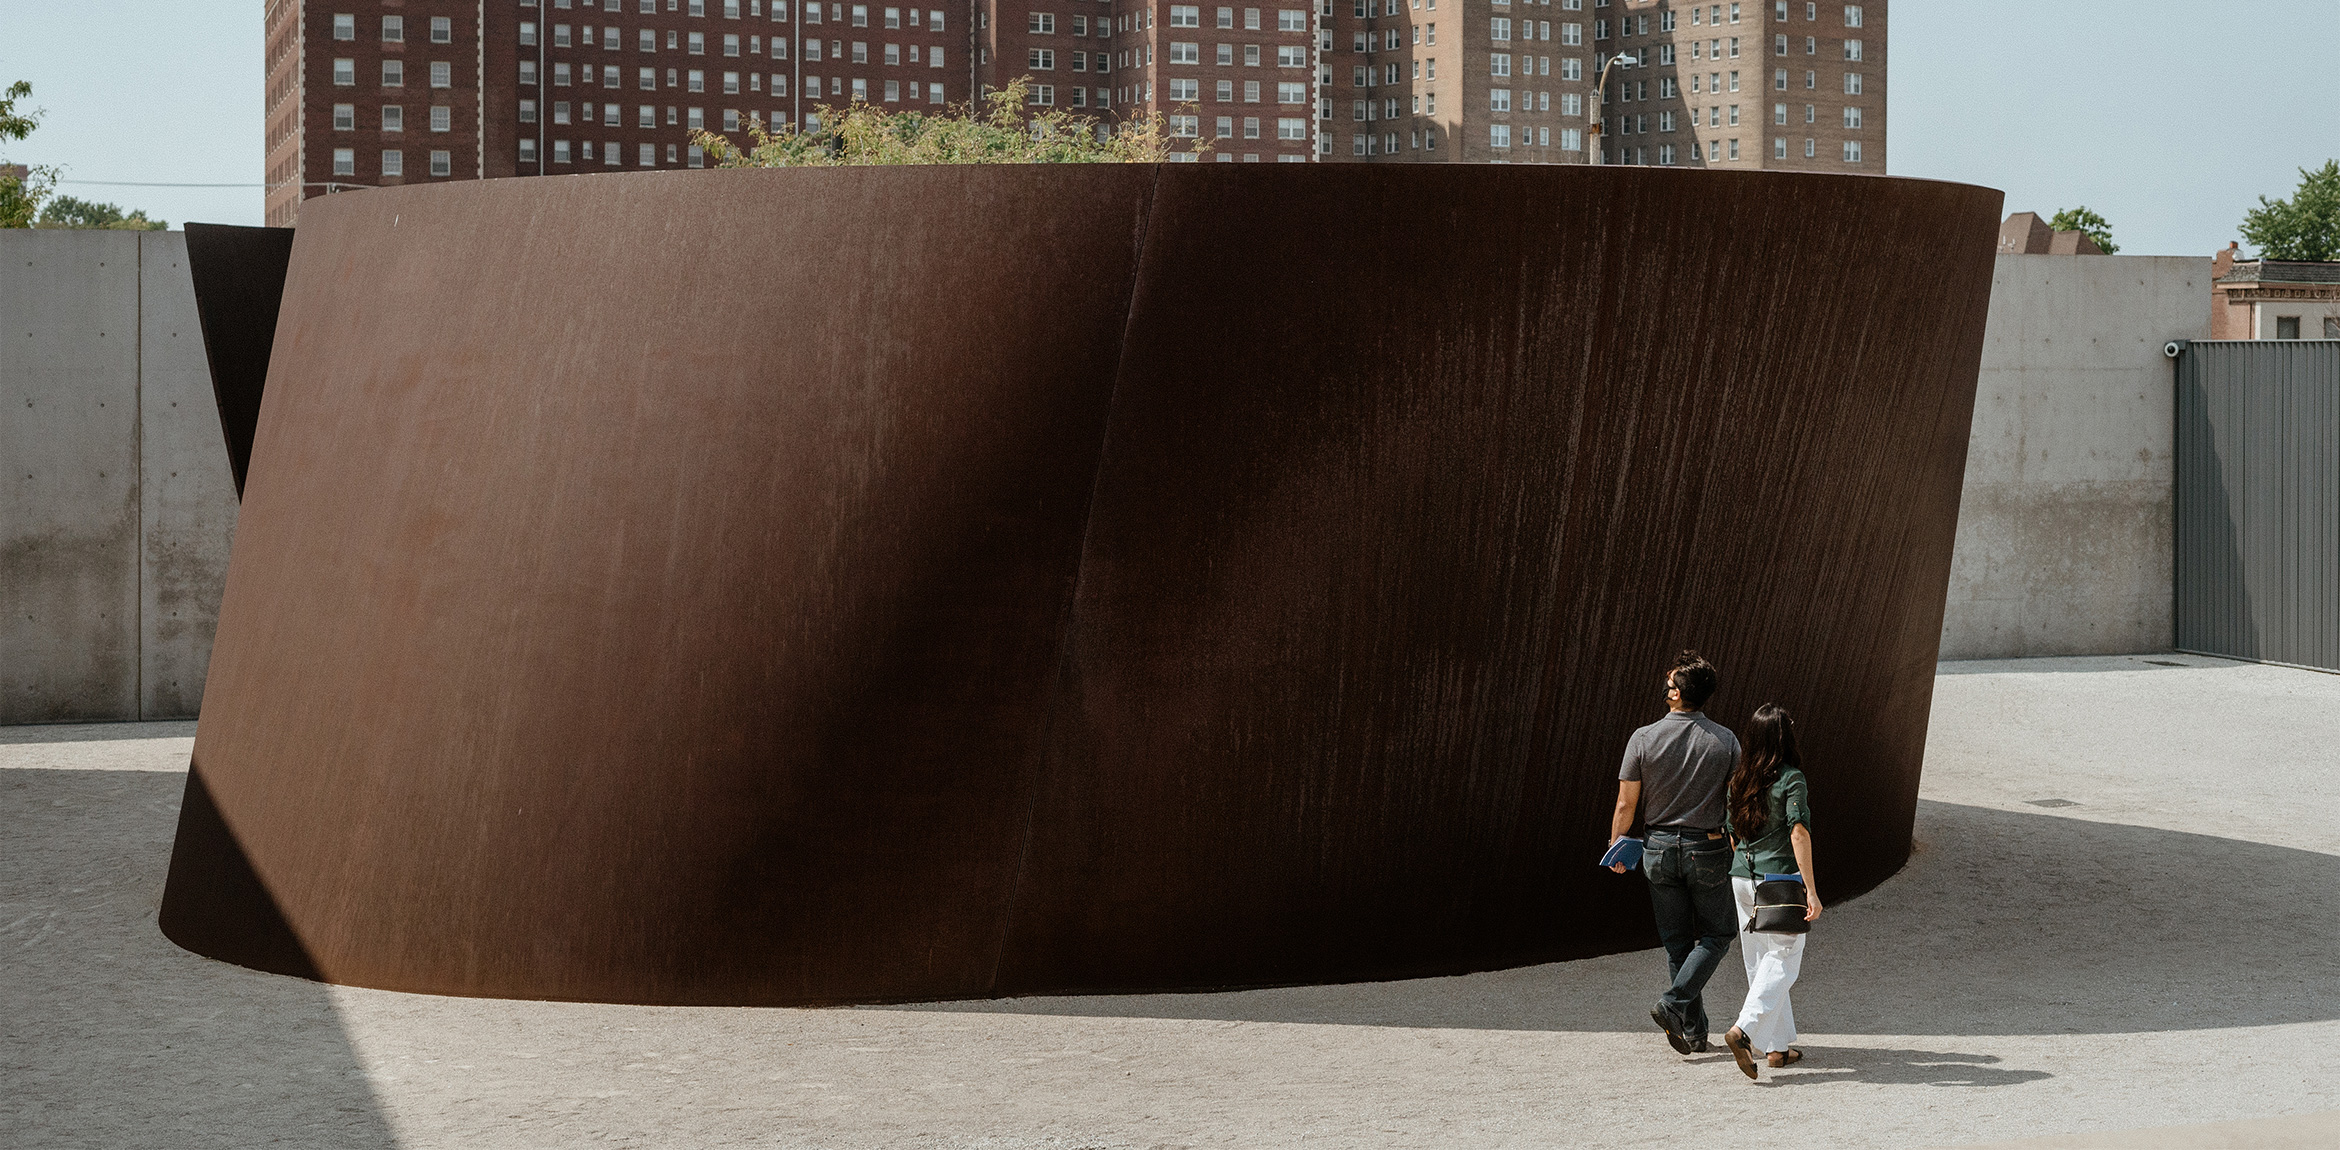 Two visitors walking around the base of Richard Serra's Joe in the museum courtyard